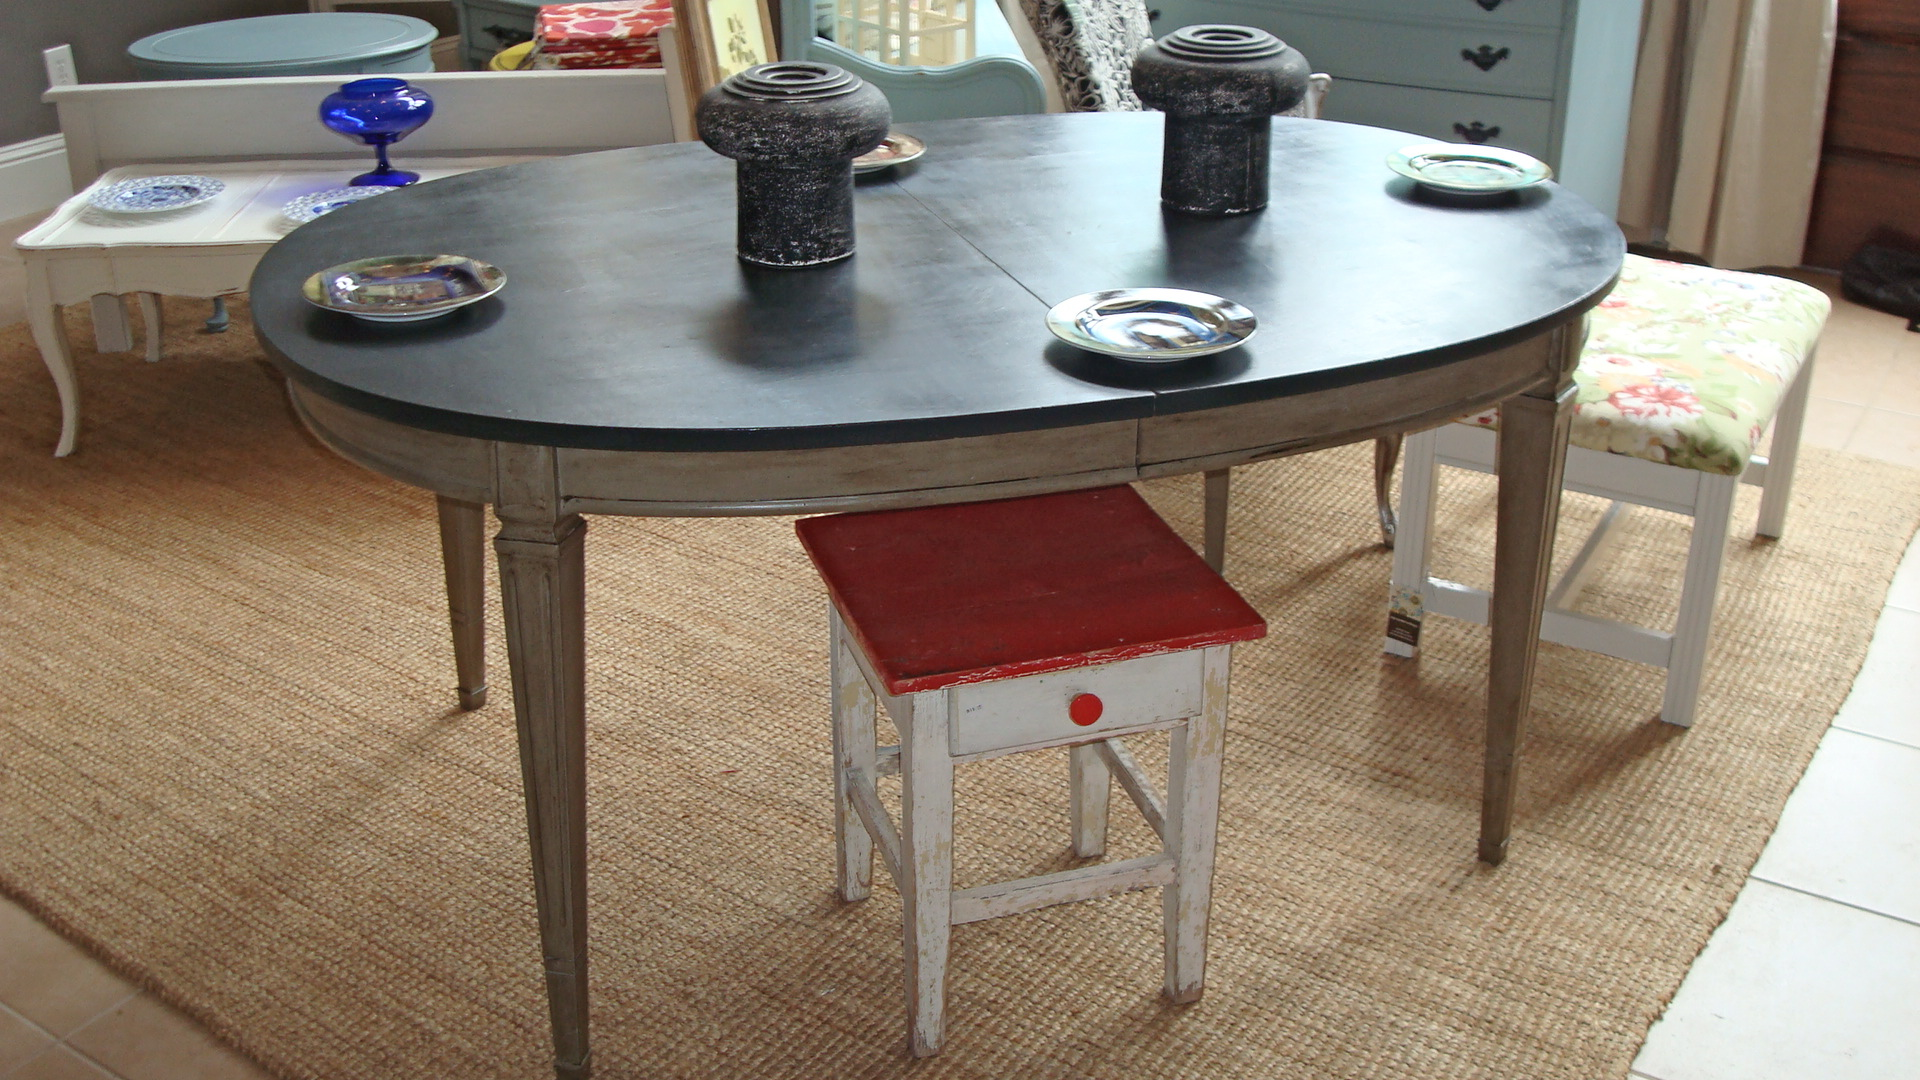 Upcycled Dining Room Furniture Room Image and Wallper 2017 : creole cottage table from www.lautadiaries.com size 1920 x 1080 jpeg 874kB